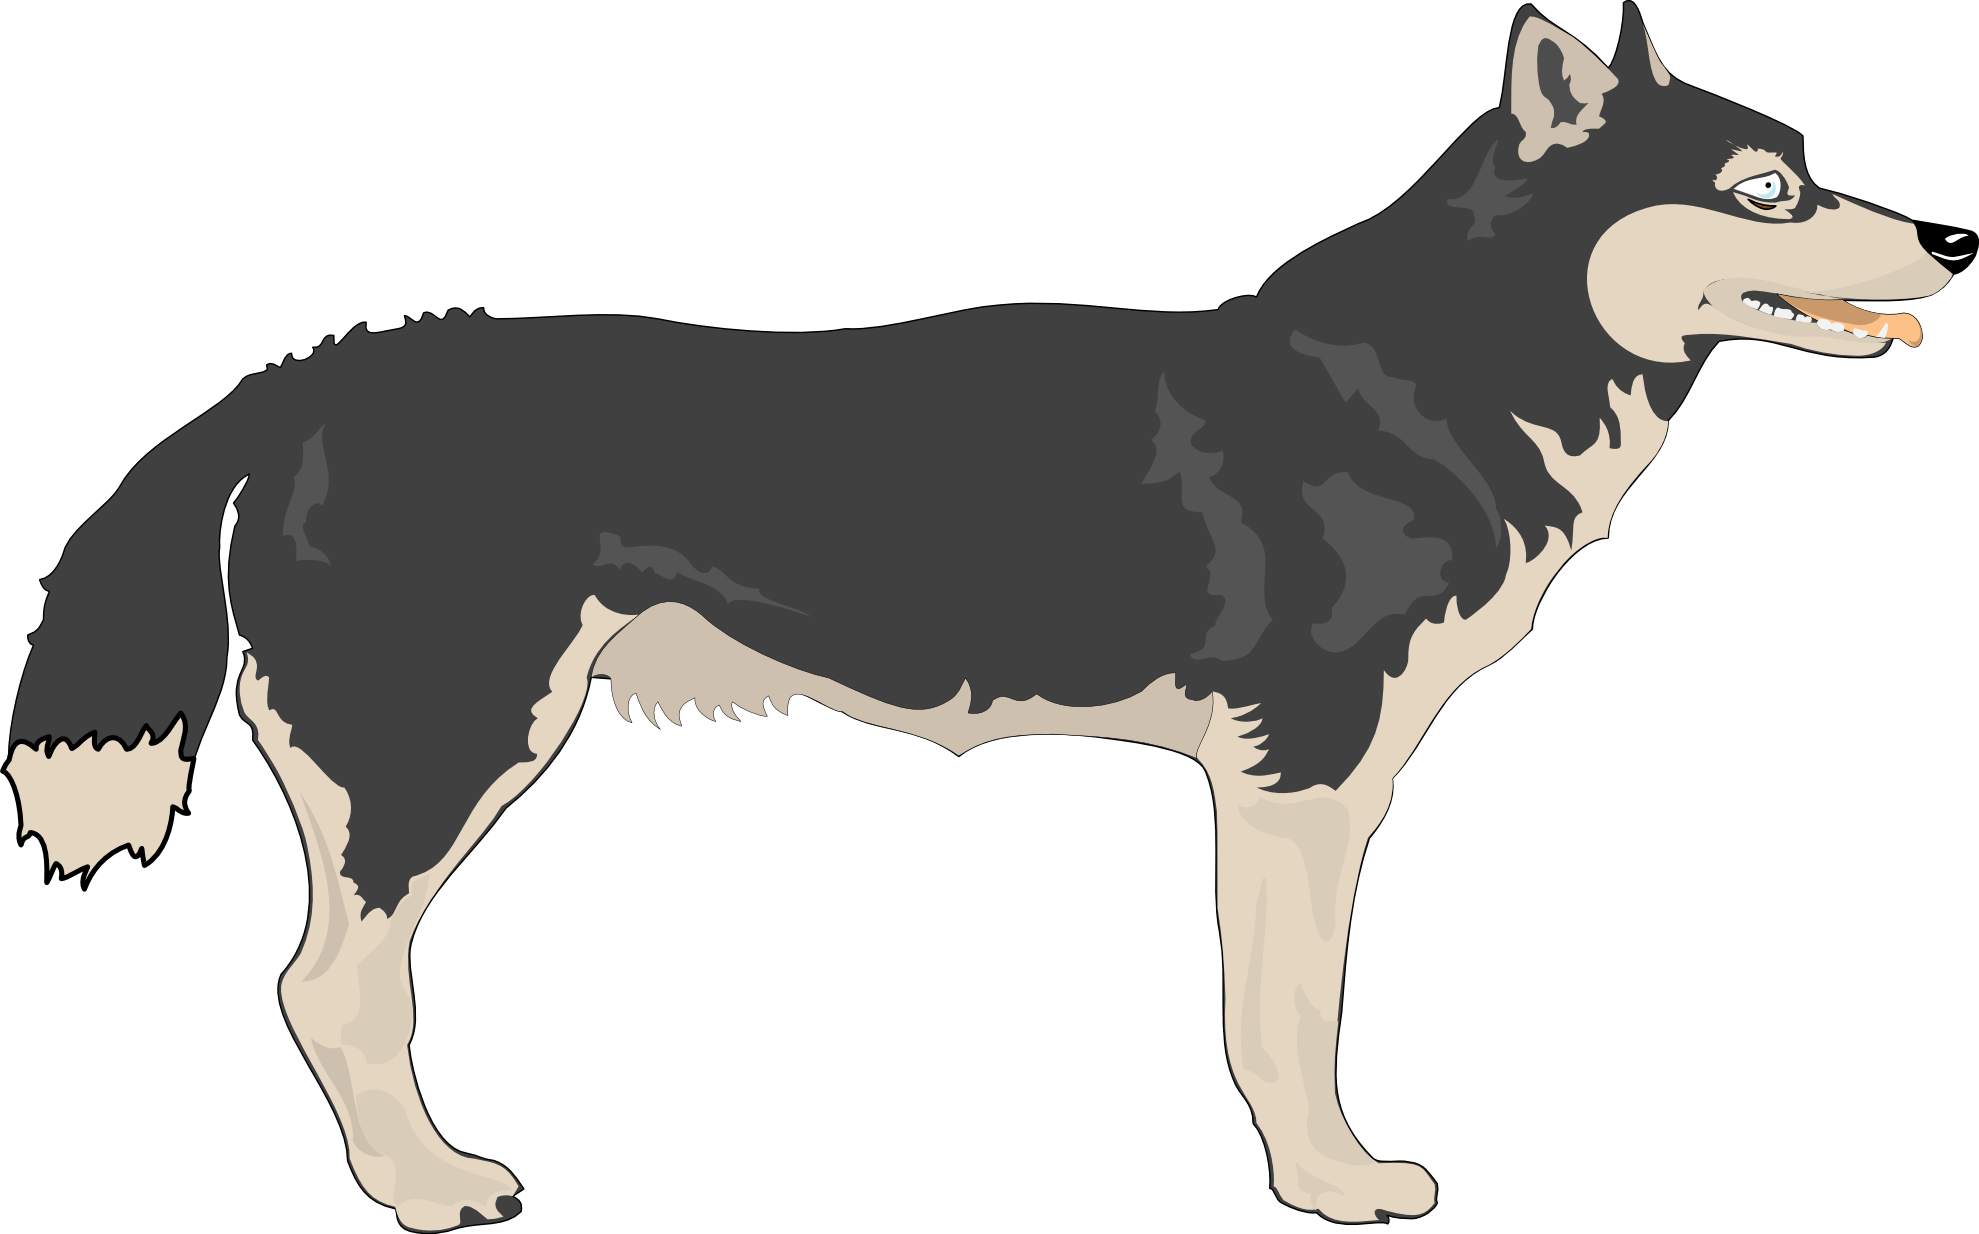 Coyote clipart werewolf. Animated wolf gallery images